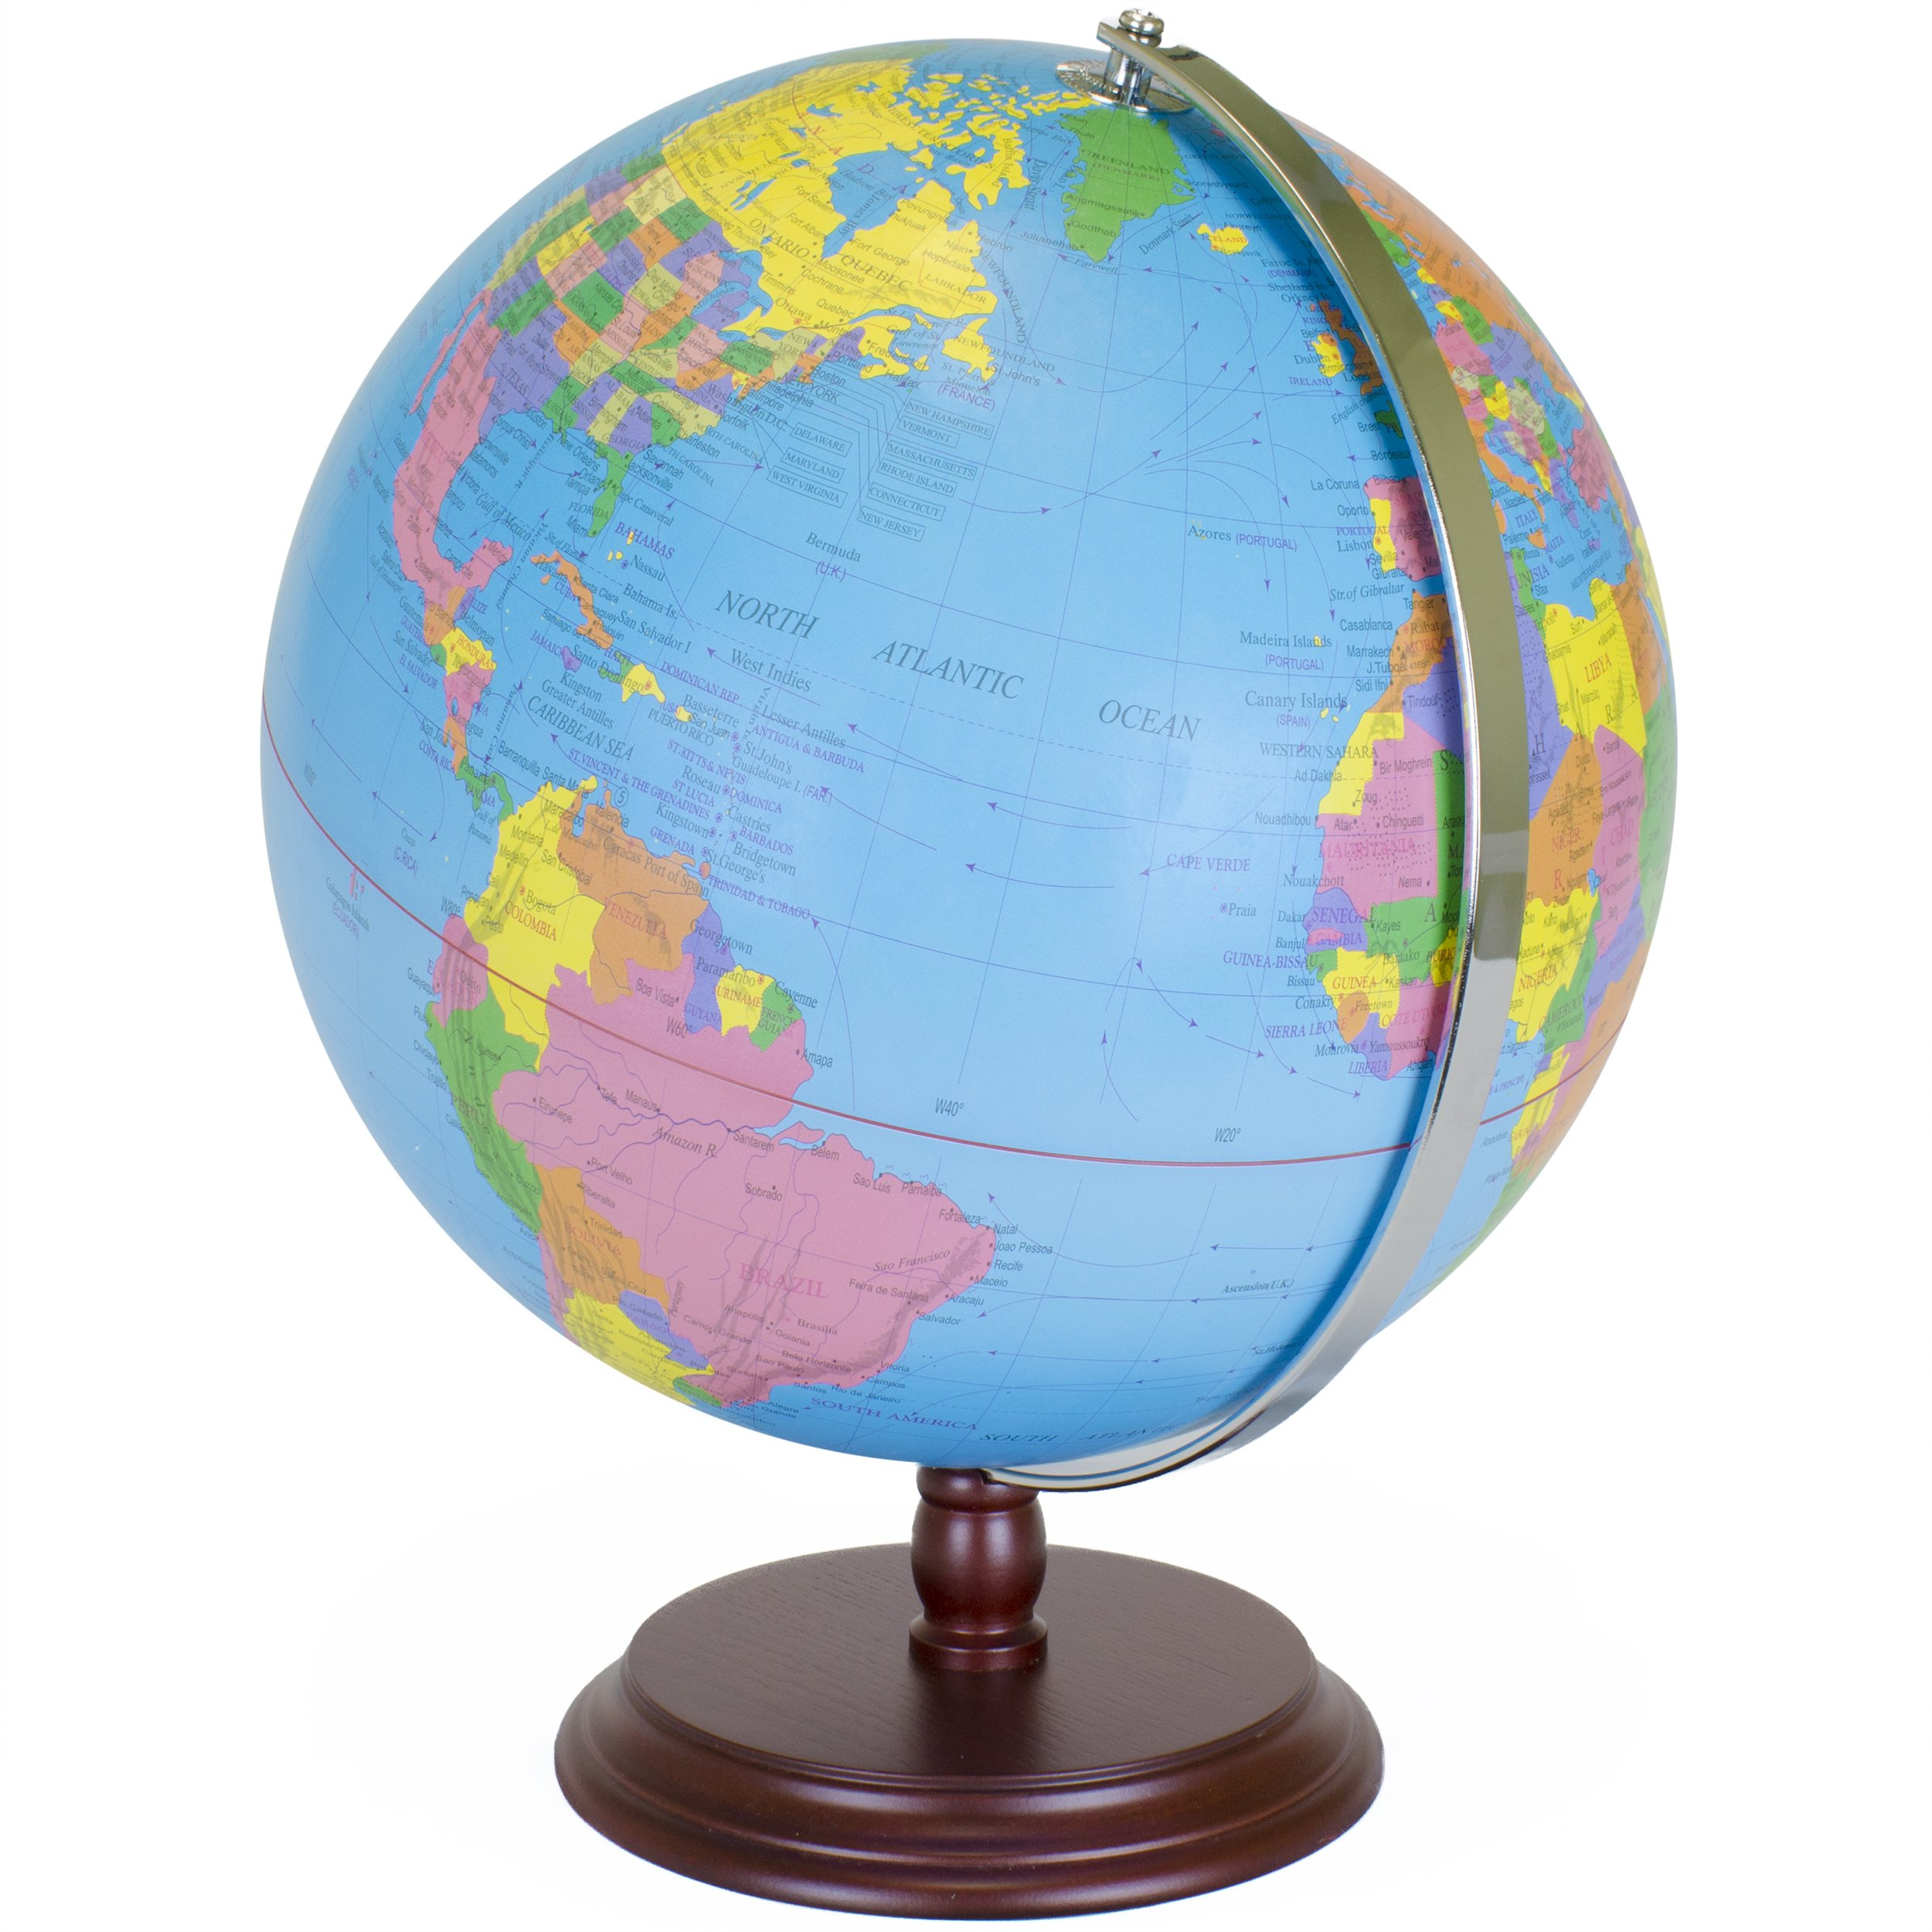 World Globe | 12 Inch Desktop Atlas with Antique Stand | Earth with Political Maps + Blue Oceans for Educational Geography | Classic Globo Vintage Spinning Perfect for Geographical National Kids Toys by Novo Basics